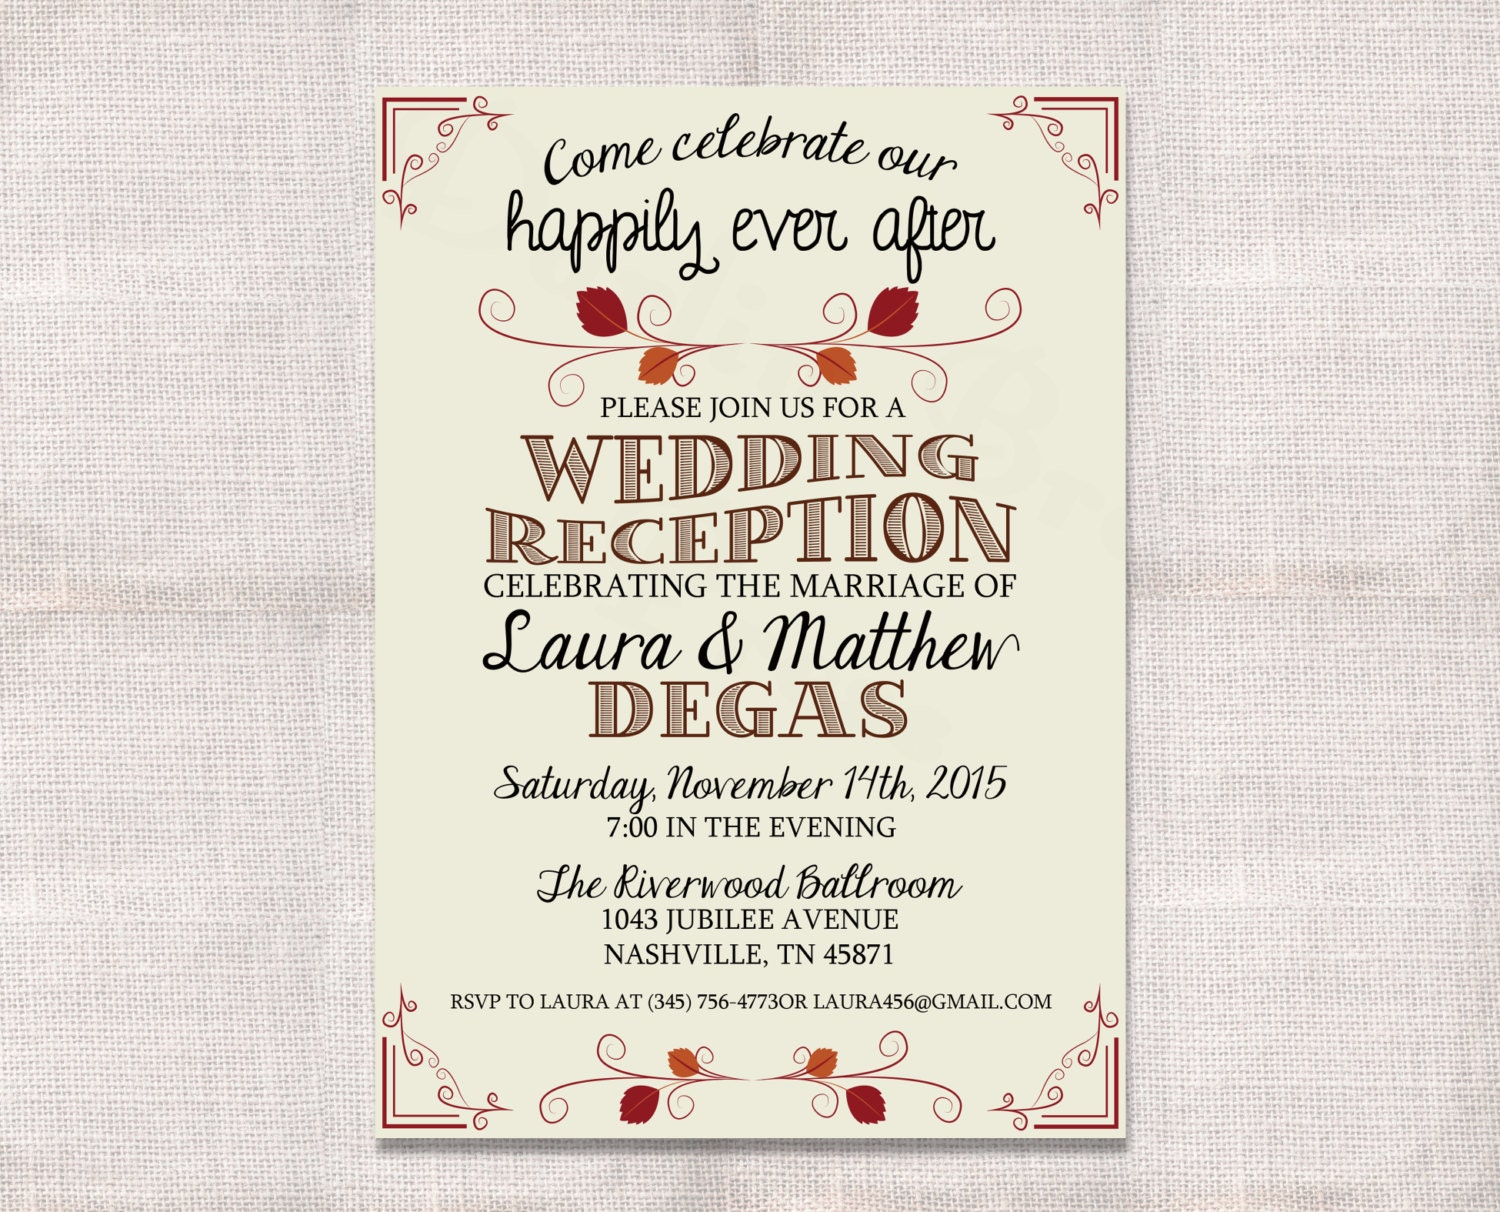 Invitation Wording For Wedding Reception: Wedding Reception Celebration After Party Invitation Custom